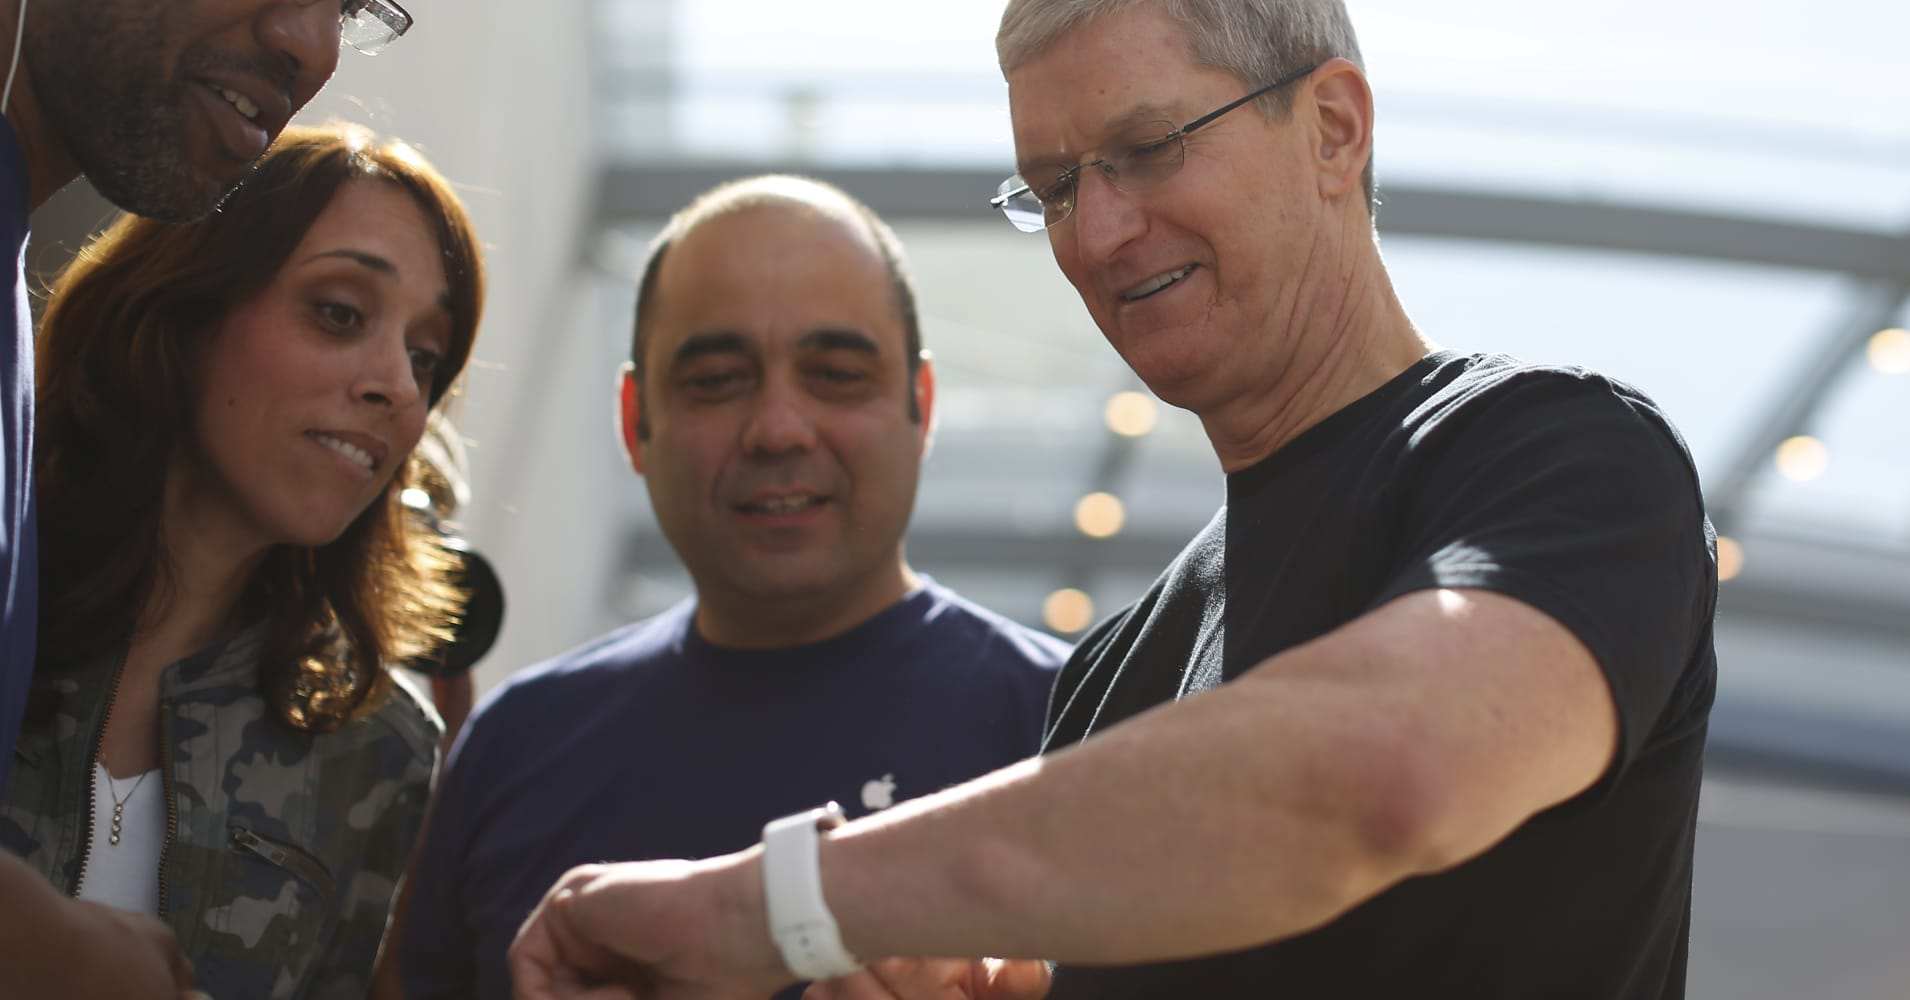 Apple CEO Tim Cook test-drove a device that tracks his blood sugar, hinting at Apple's interest